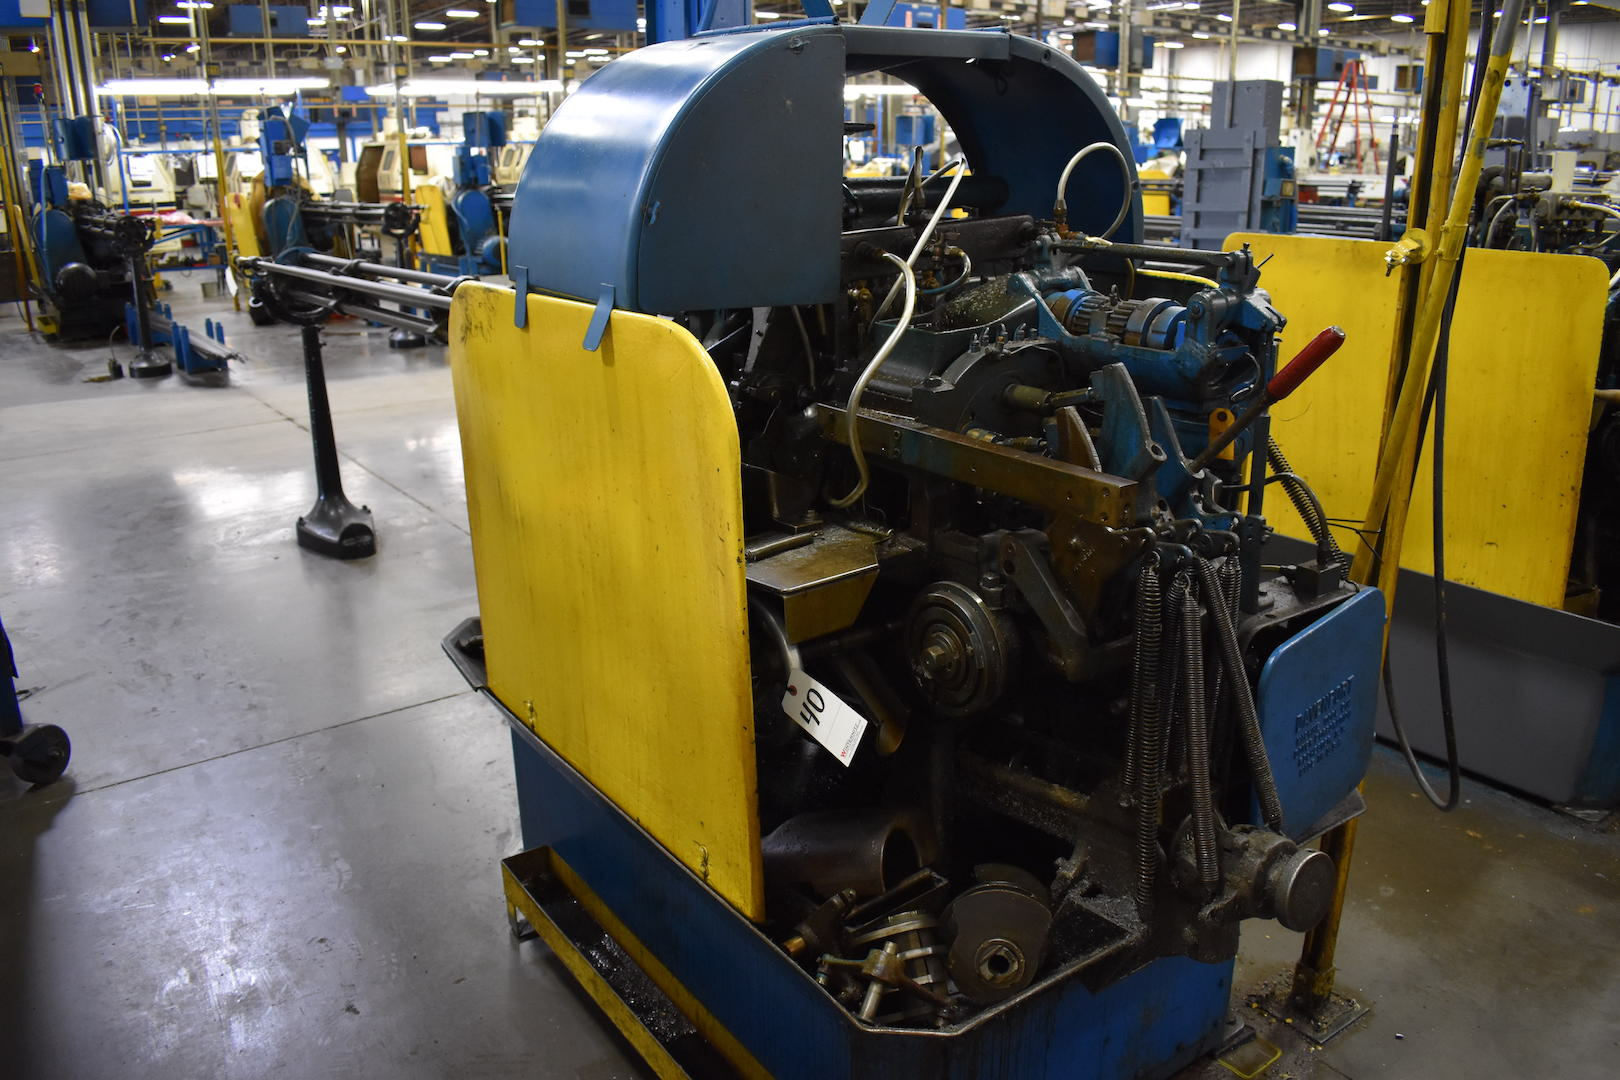 Lot 40 - DAVENPORT MODEL B OVERSIZE 5-SPINDLE AUTOMATIC SCREW MACHINE:(EXCLUDES 4-POSITION CROSS SLIDE)